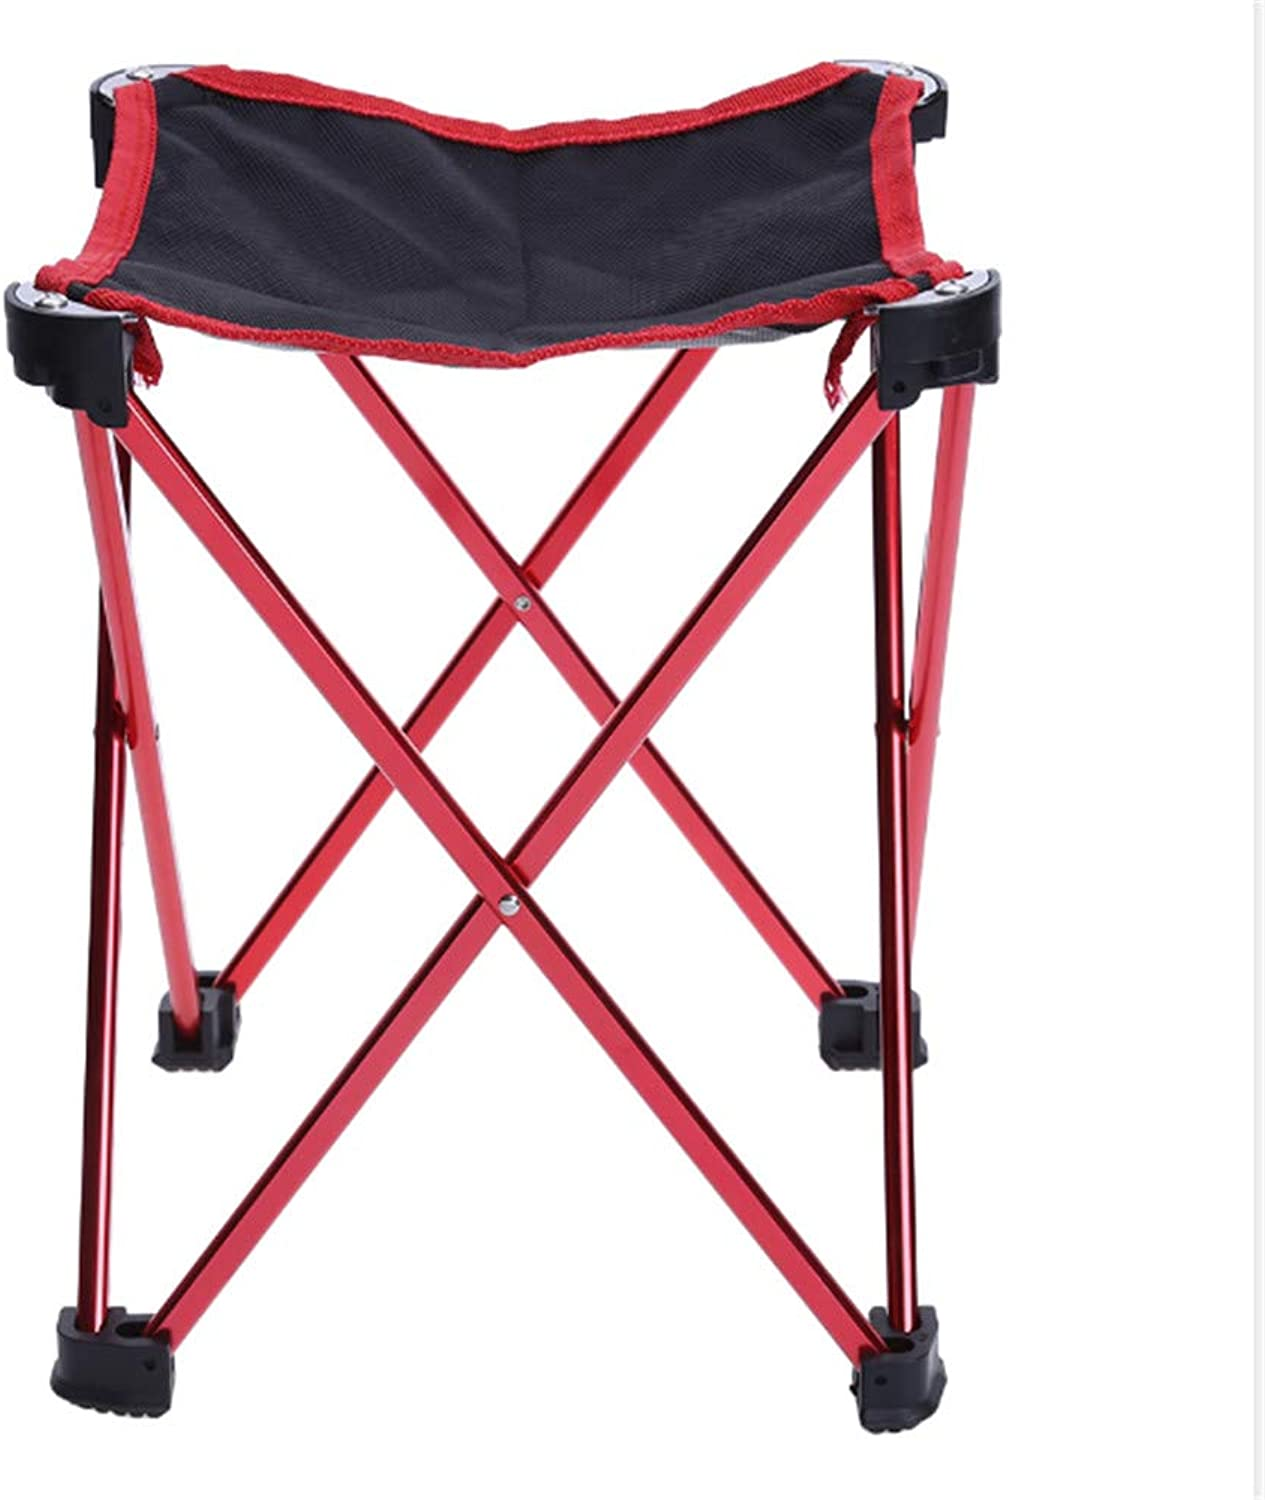 Pcs Aluminum Alloy Folding Chair Seat Stool Fishing Picnic Camping Hiking BBQ Beach Backpack Fishing Chairs with Carry Bag